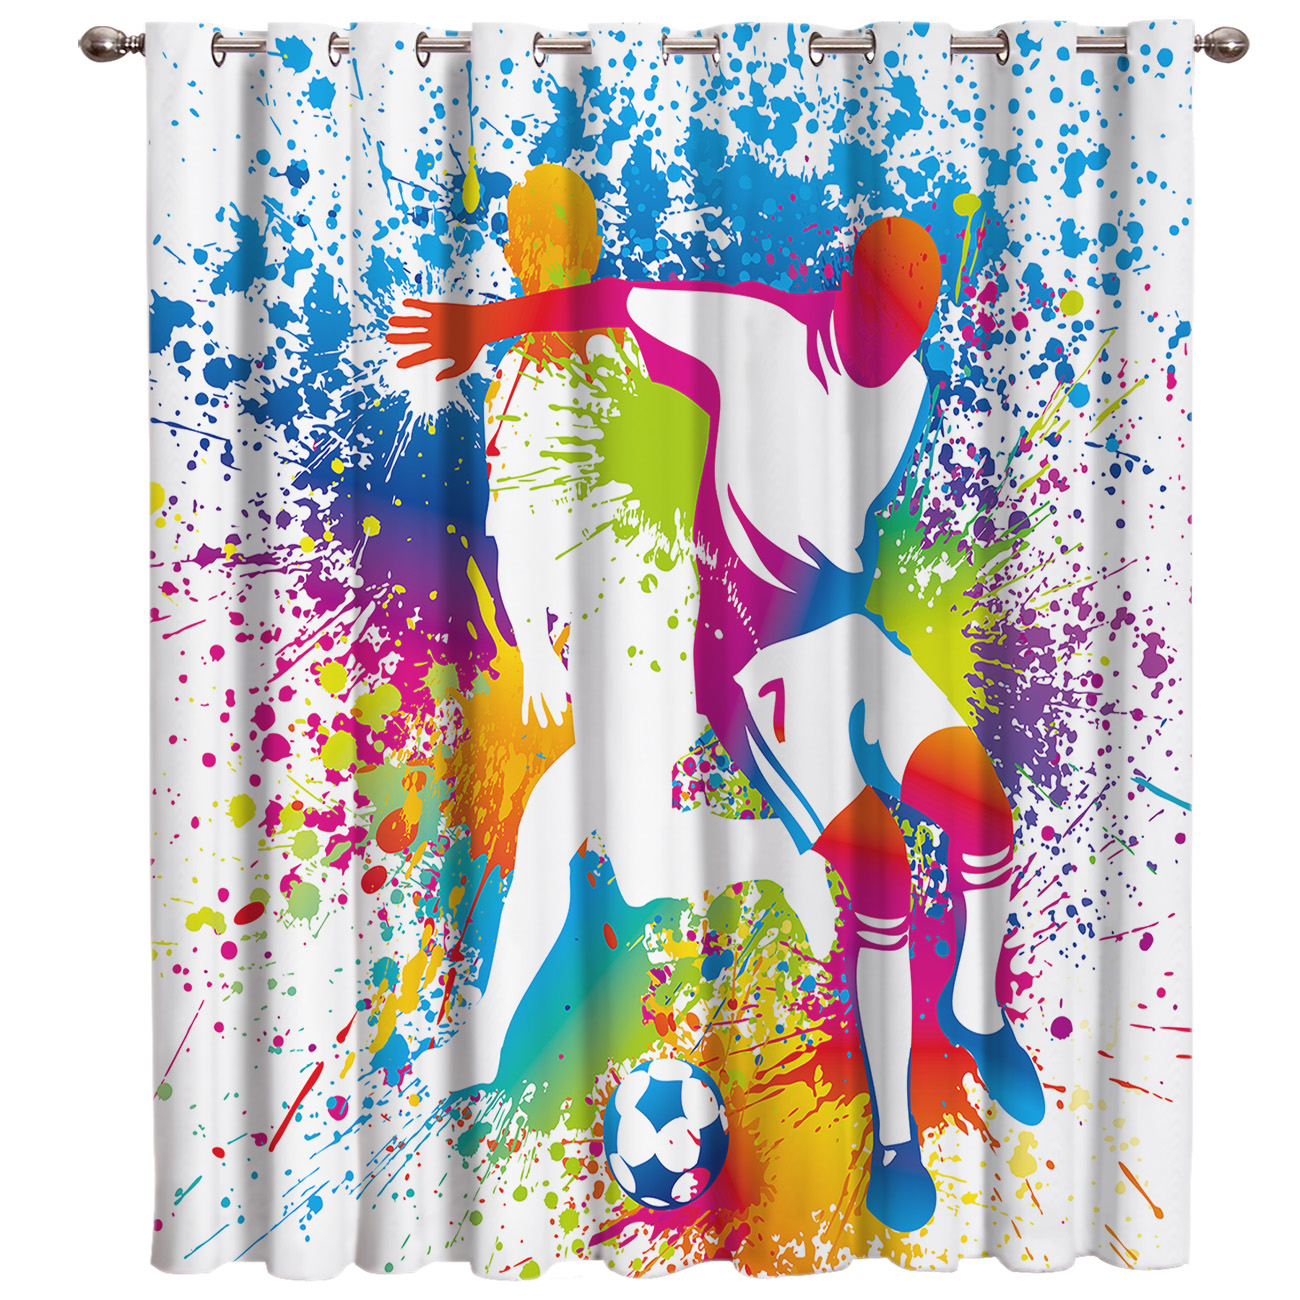 Soccer Football Game Sport Window Treatments Curtains Valance Window Curtains Dark Living Room Curtain Rod Bathroom Kitchen